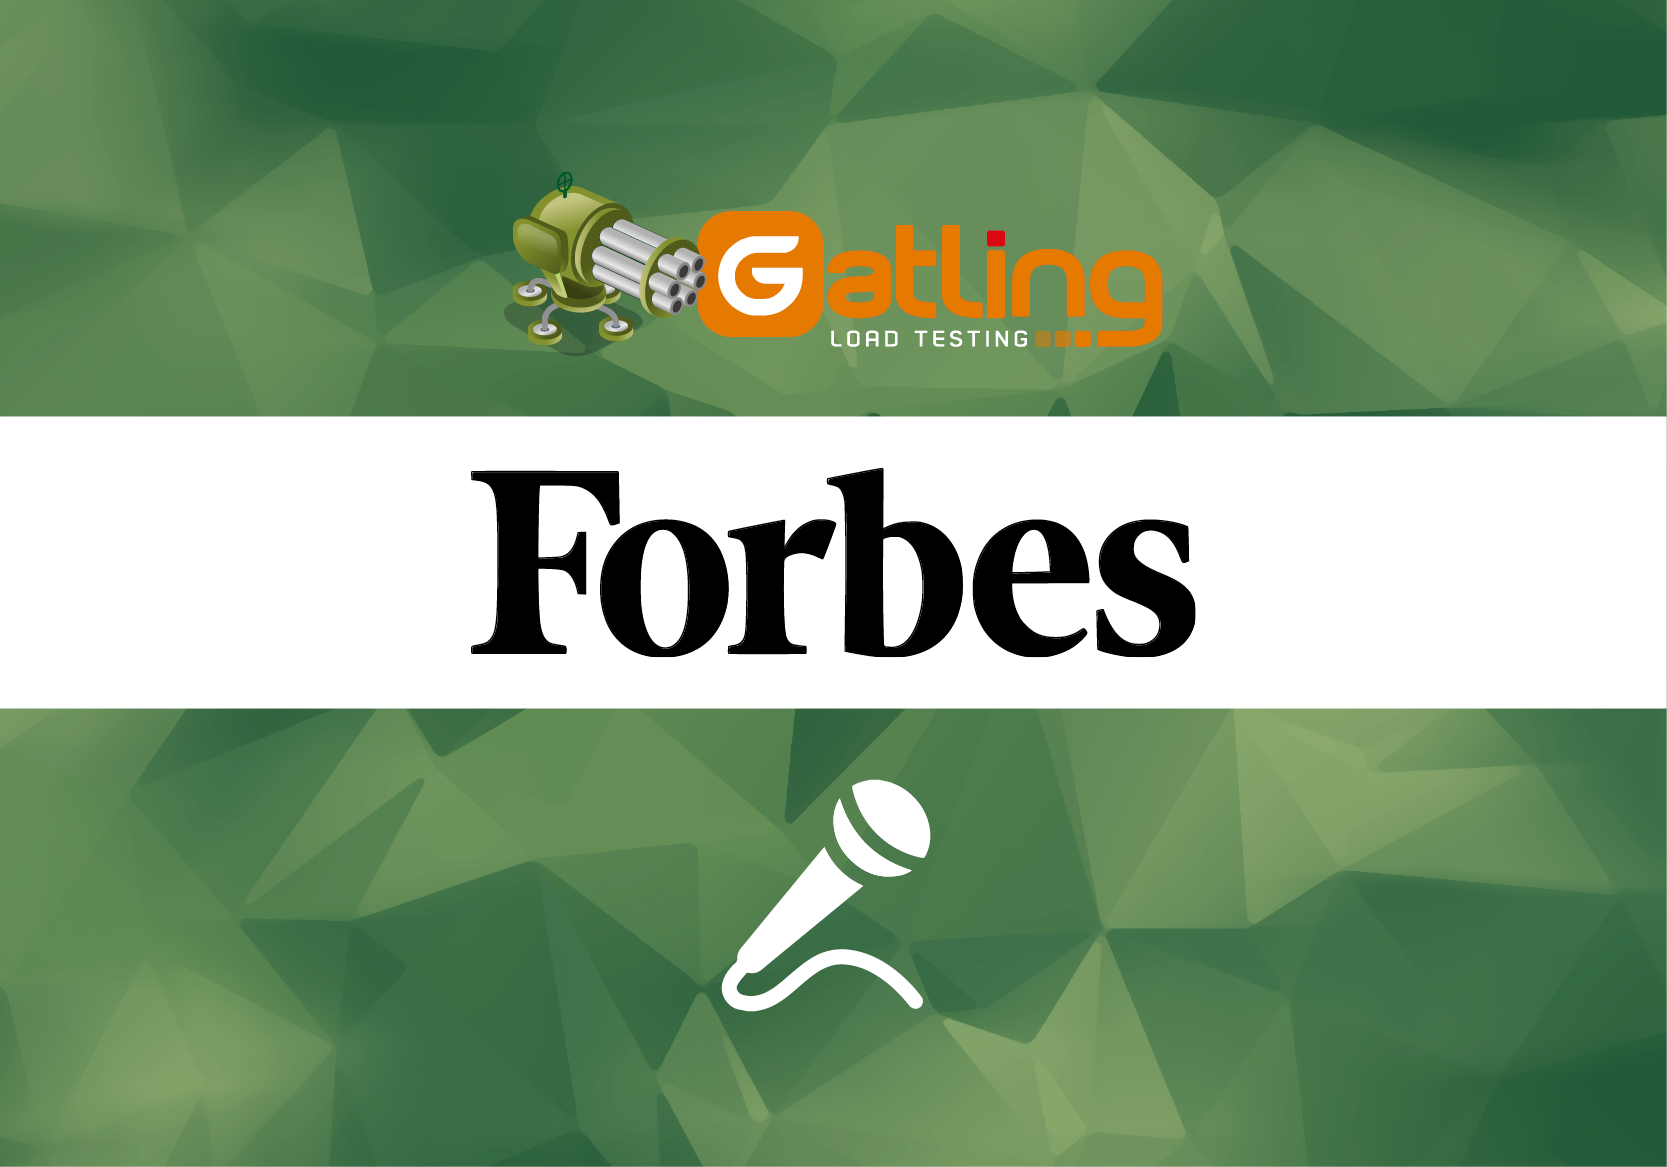 forbes published an article about gatling